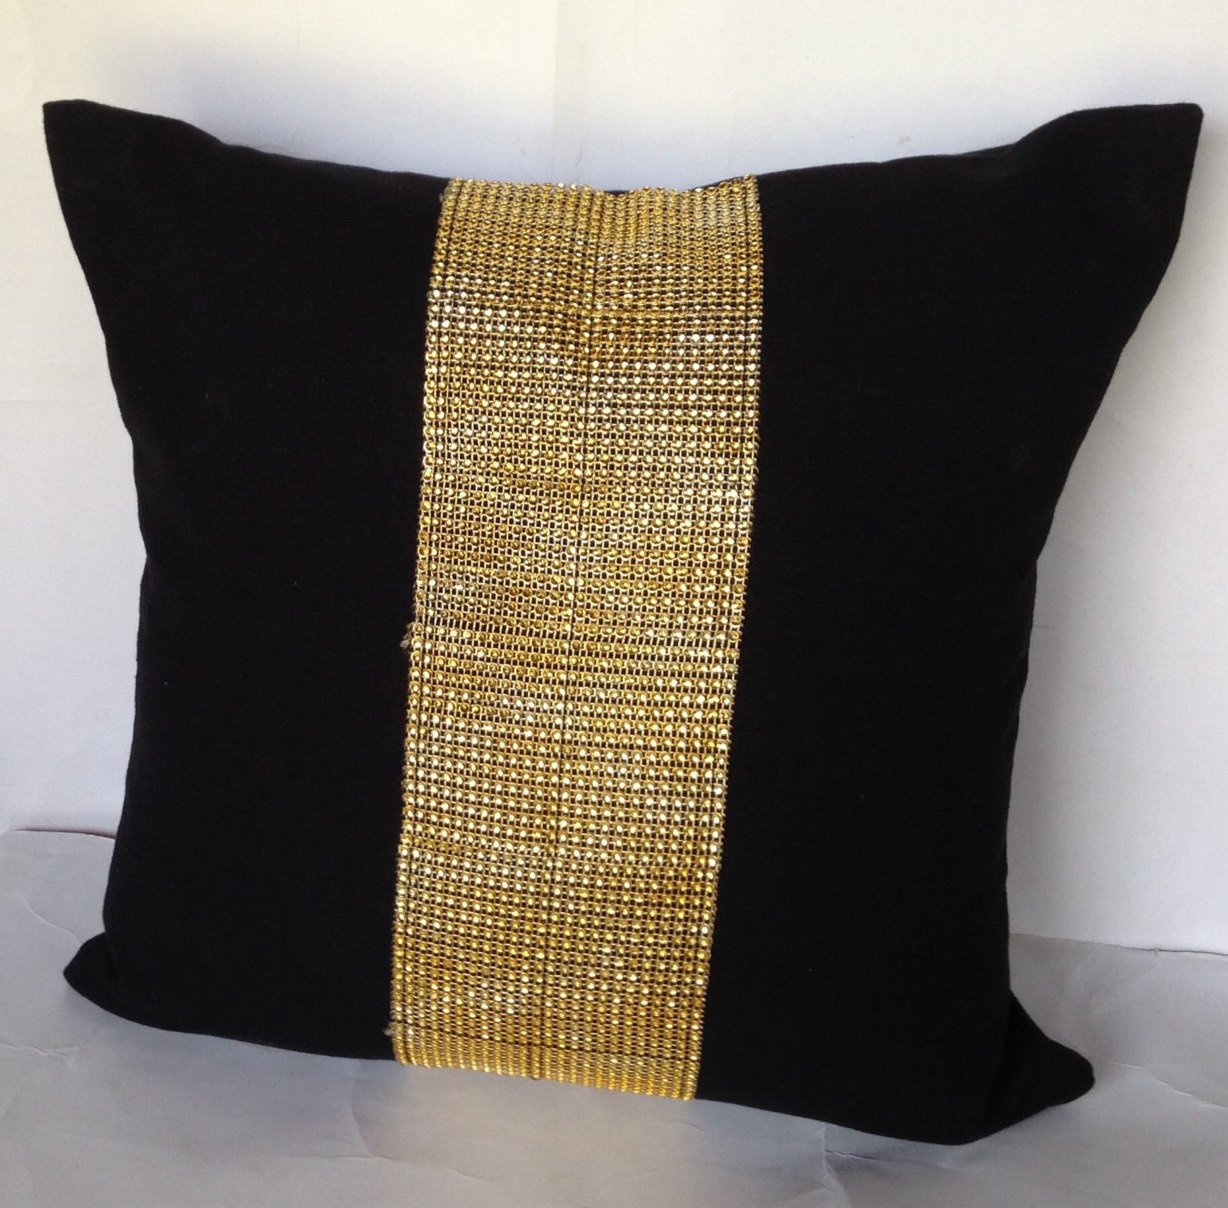 Purple Lumbar Pillow | Gold Throw Pillows | Decorative Pillow Covers 18x18